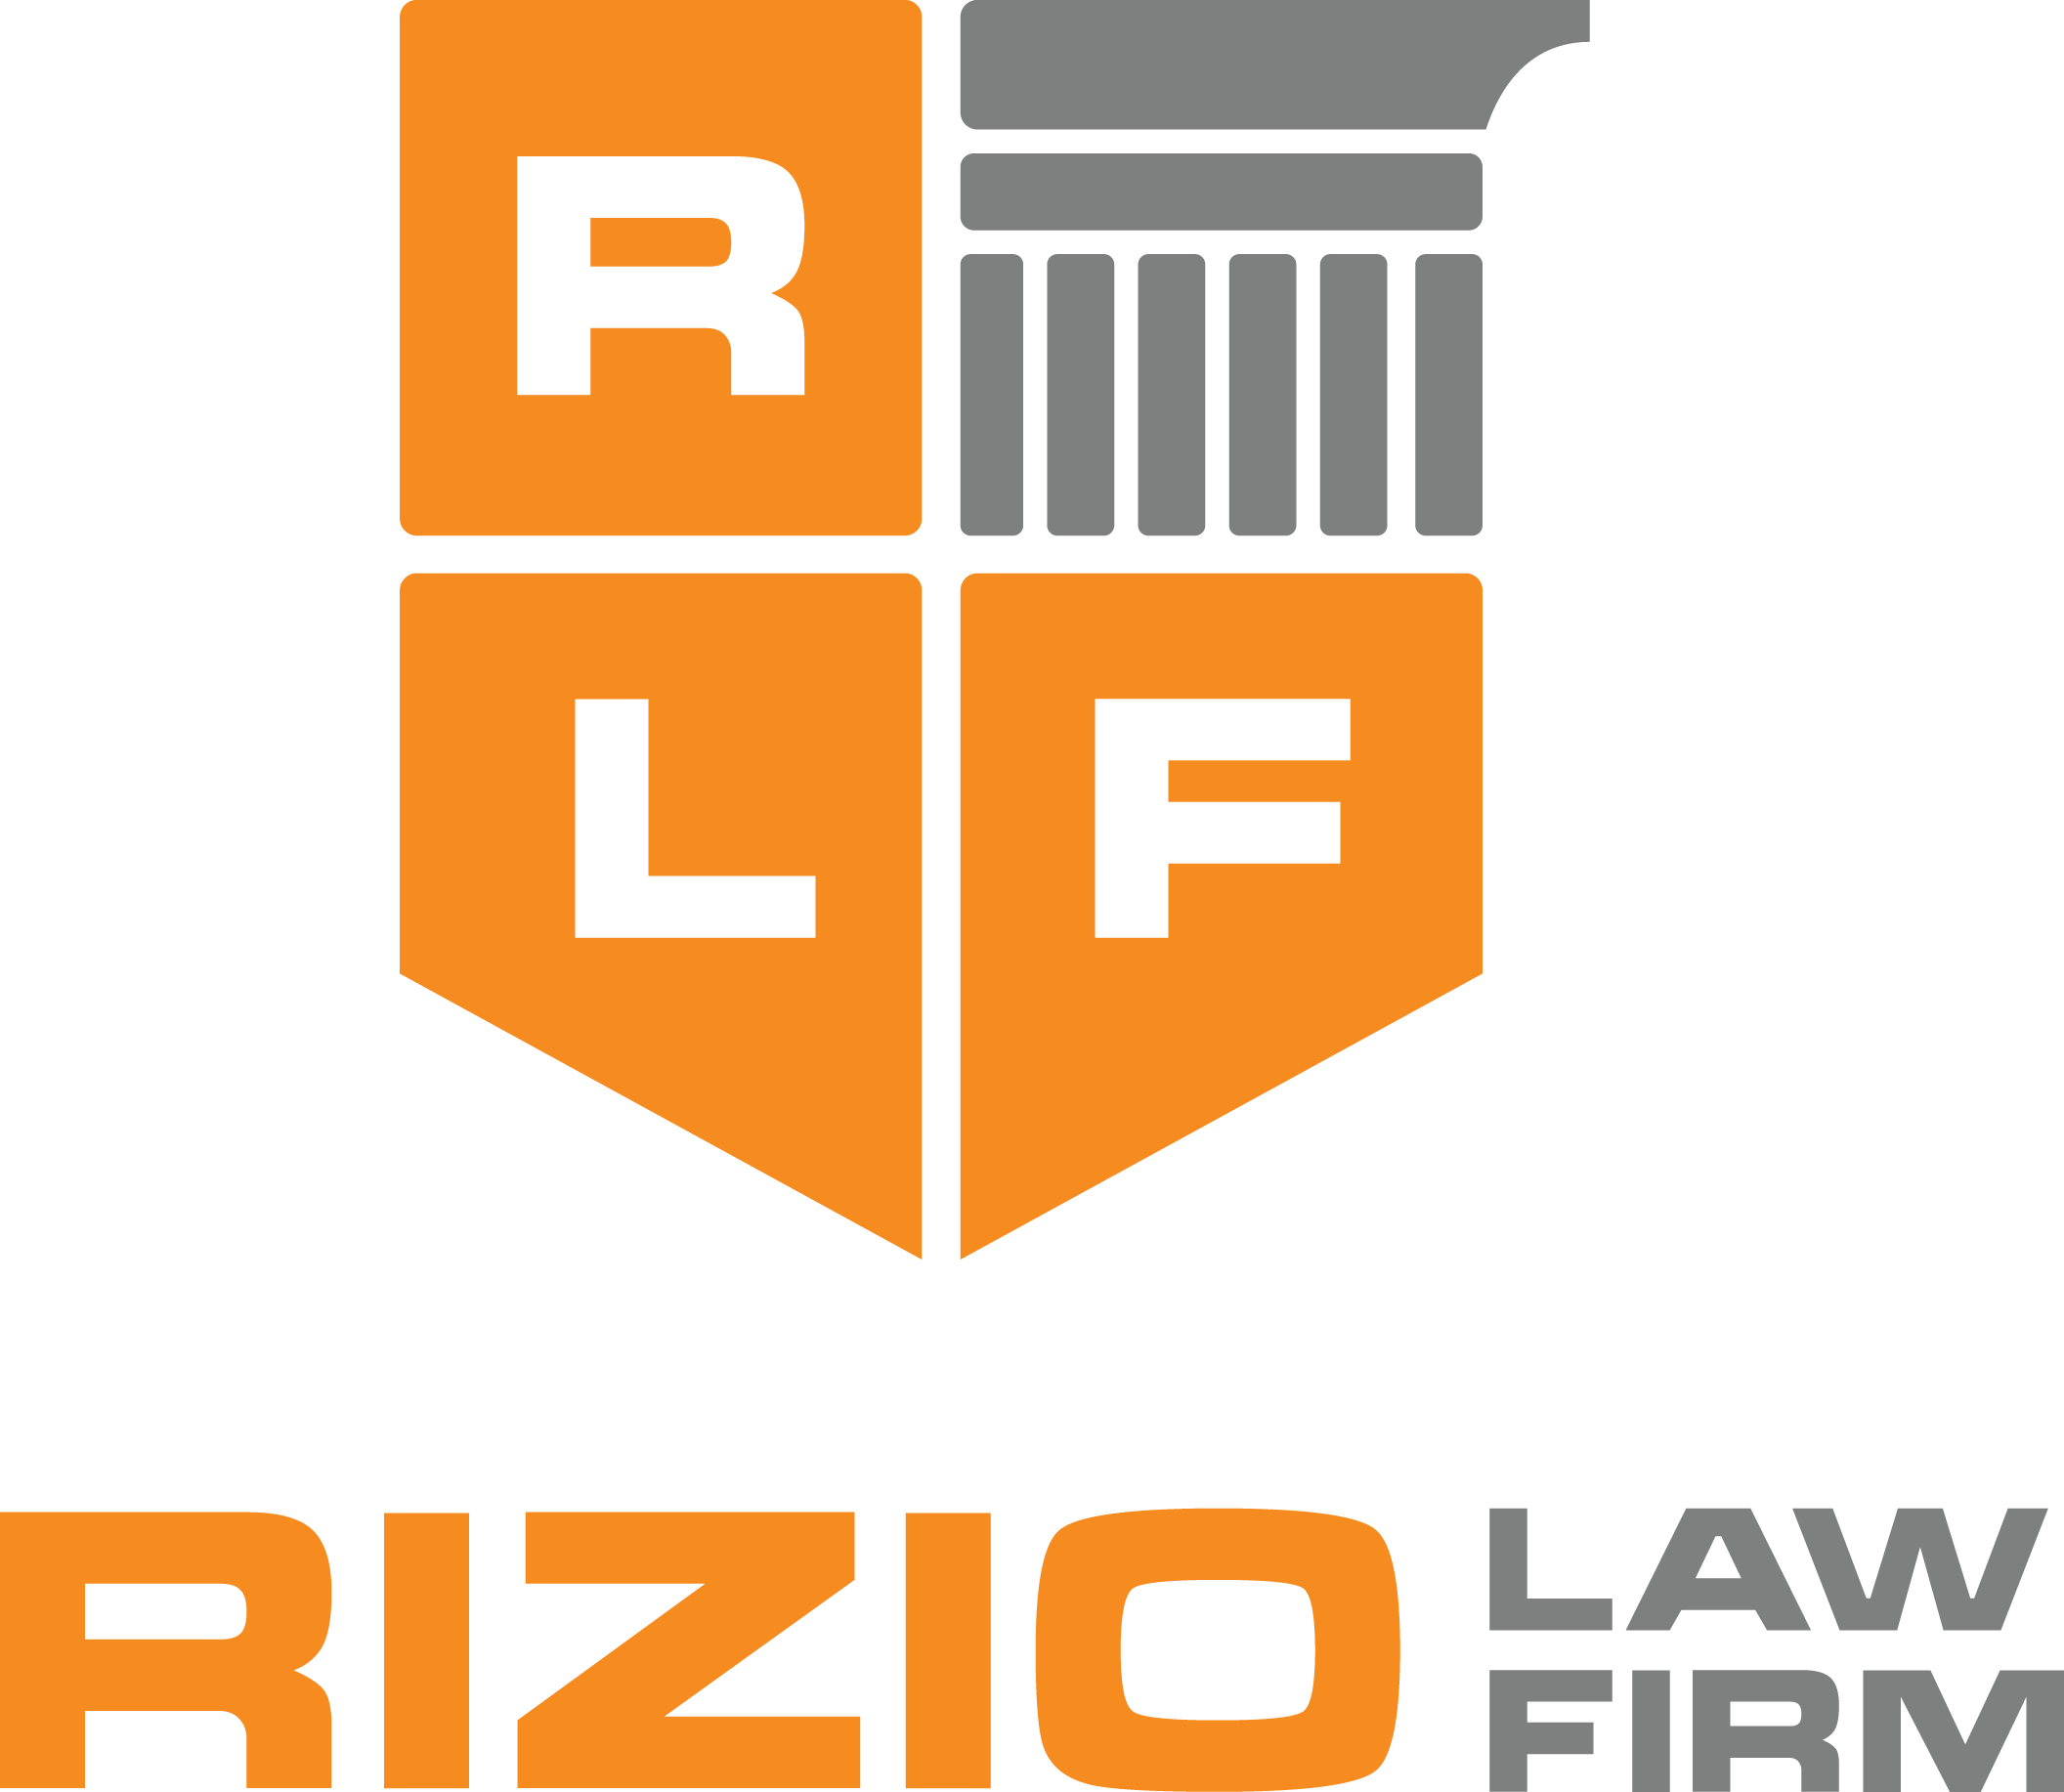 Rizio Law Firm - Attorney (Legal Services) in Riverside, United